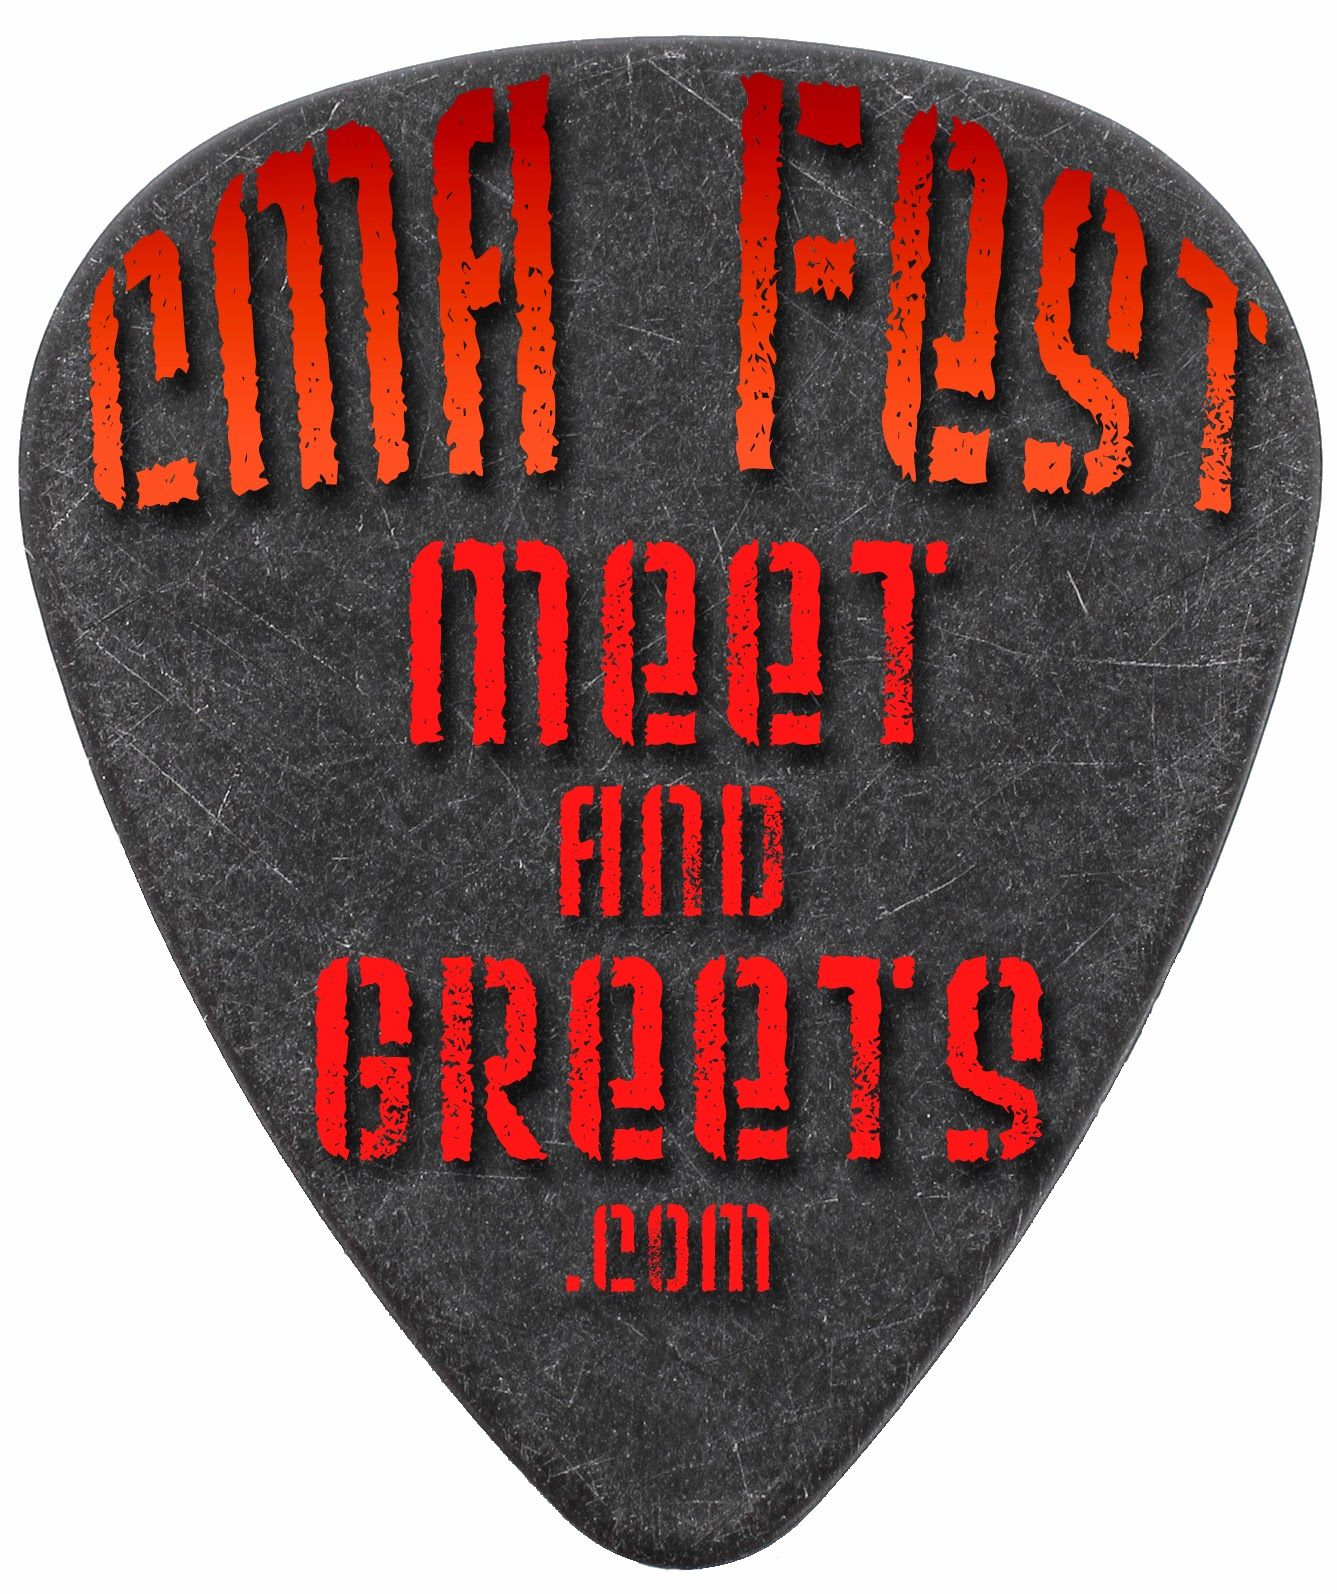 Unofficial Cma Fest Meet Greet Schedule Updated Over 435 Signings